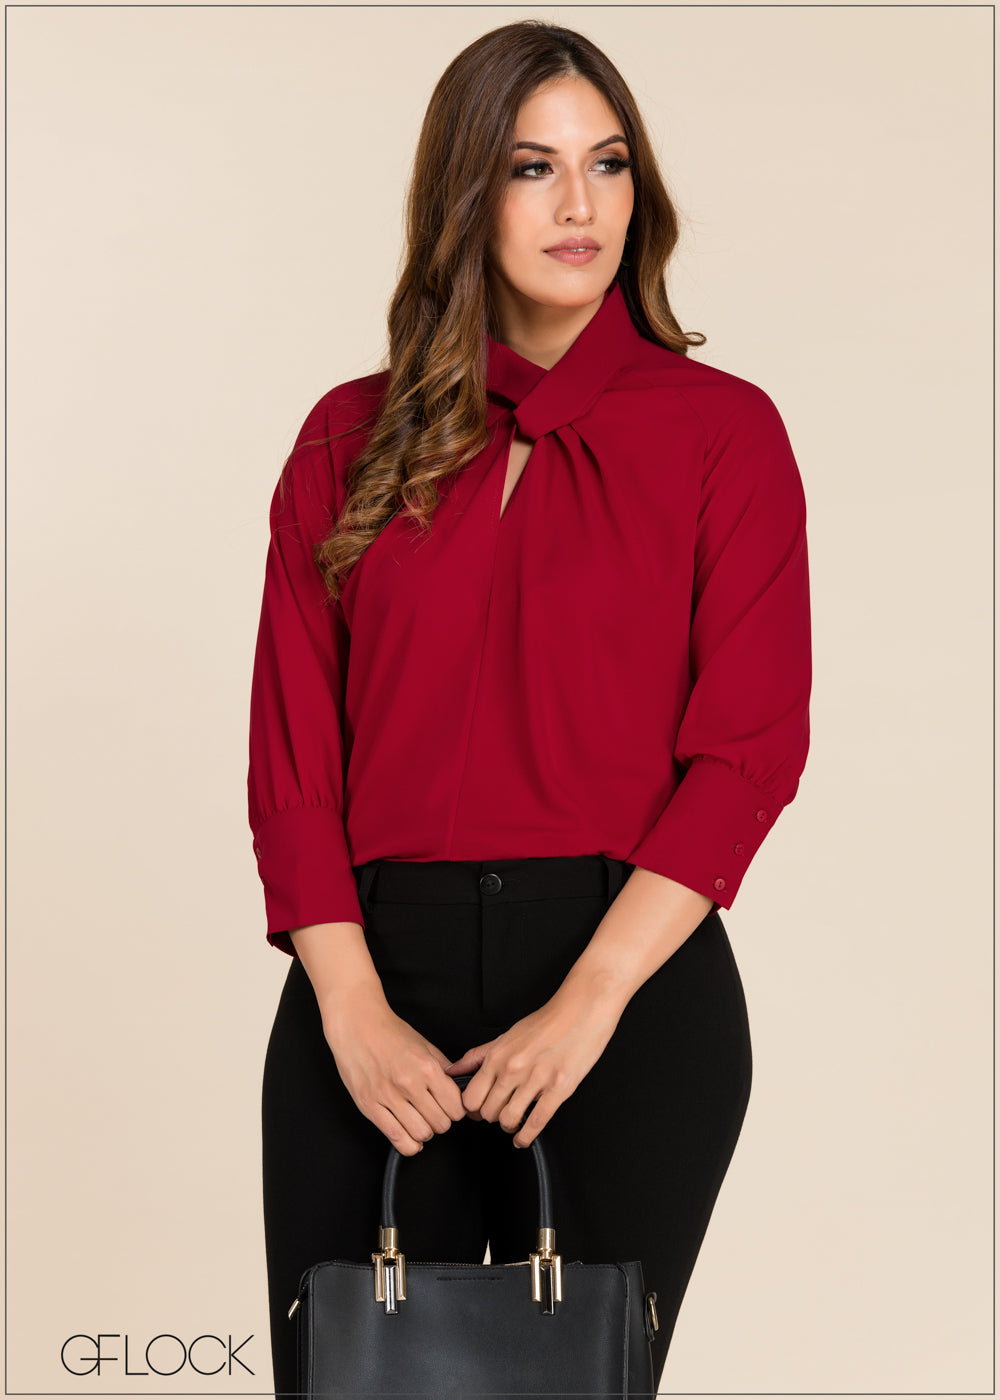 Neck Detailed Workwear Top - GFLOCK.LK